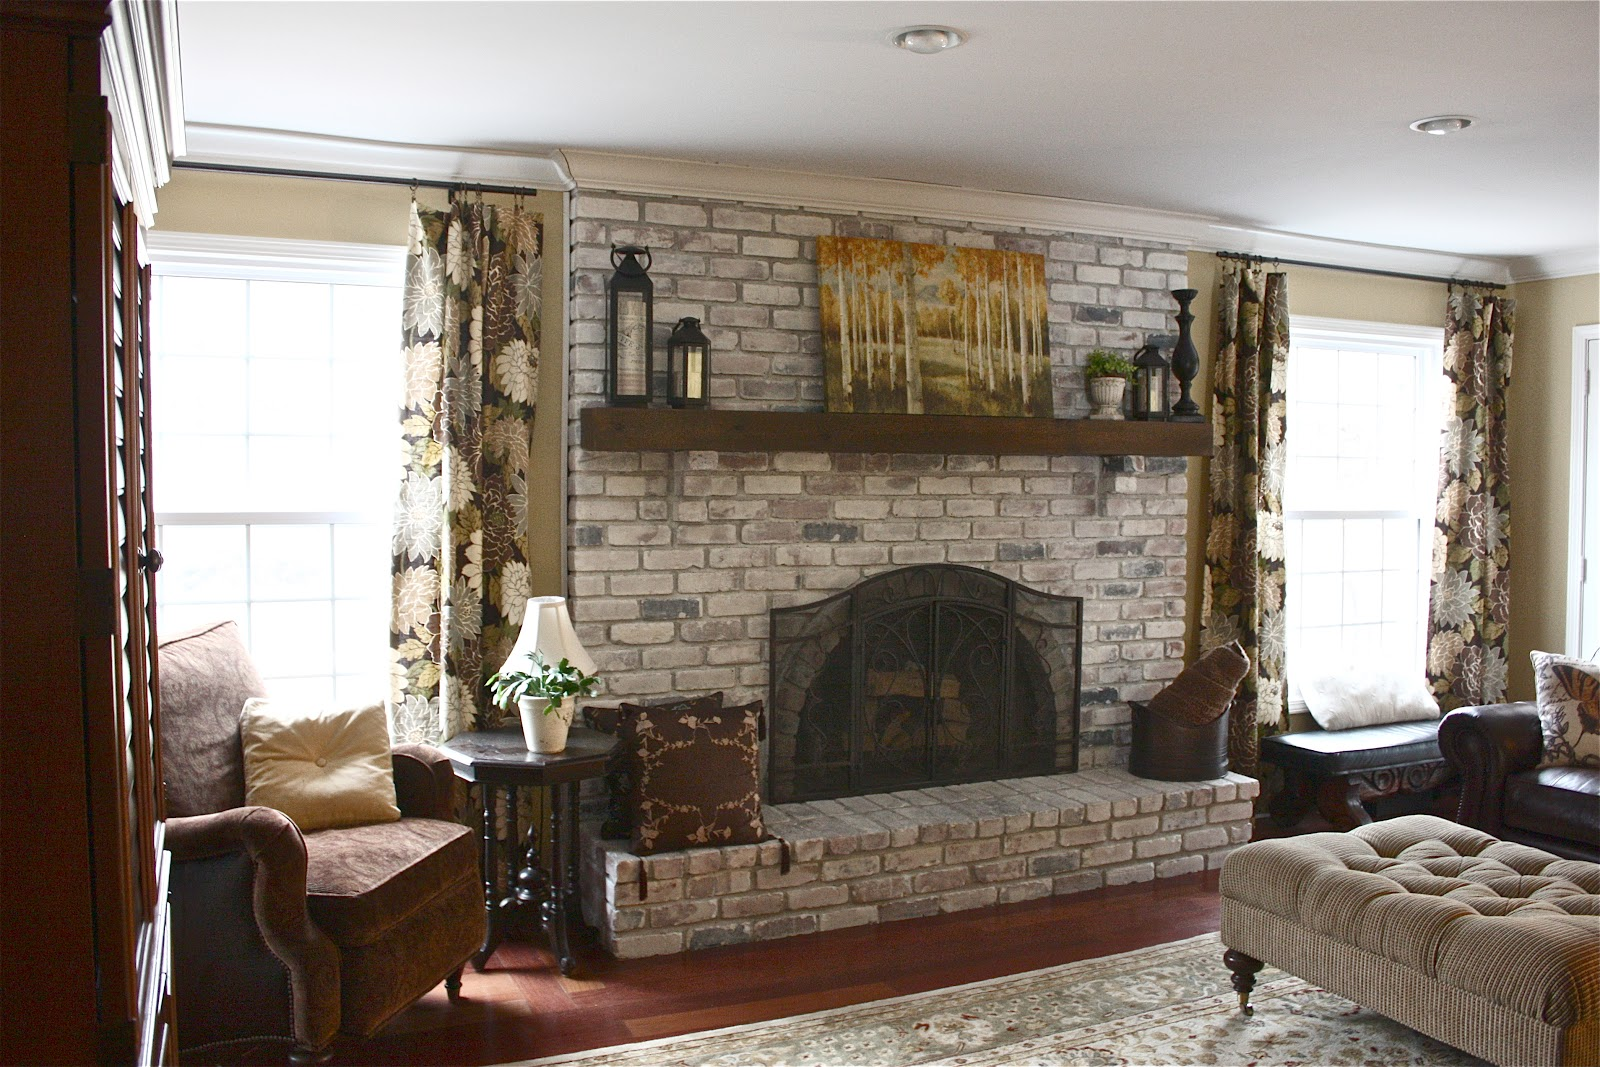 Living room ideas with red brick fireplace - Living Room Designs With Red Brick Fireplace Grotlycom